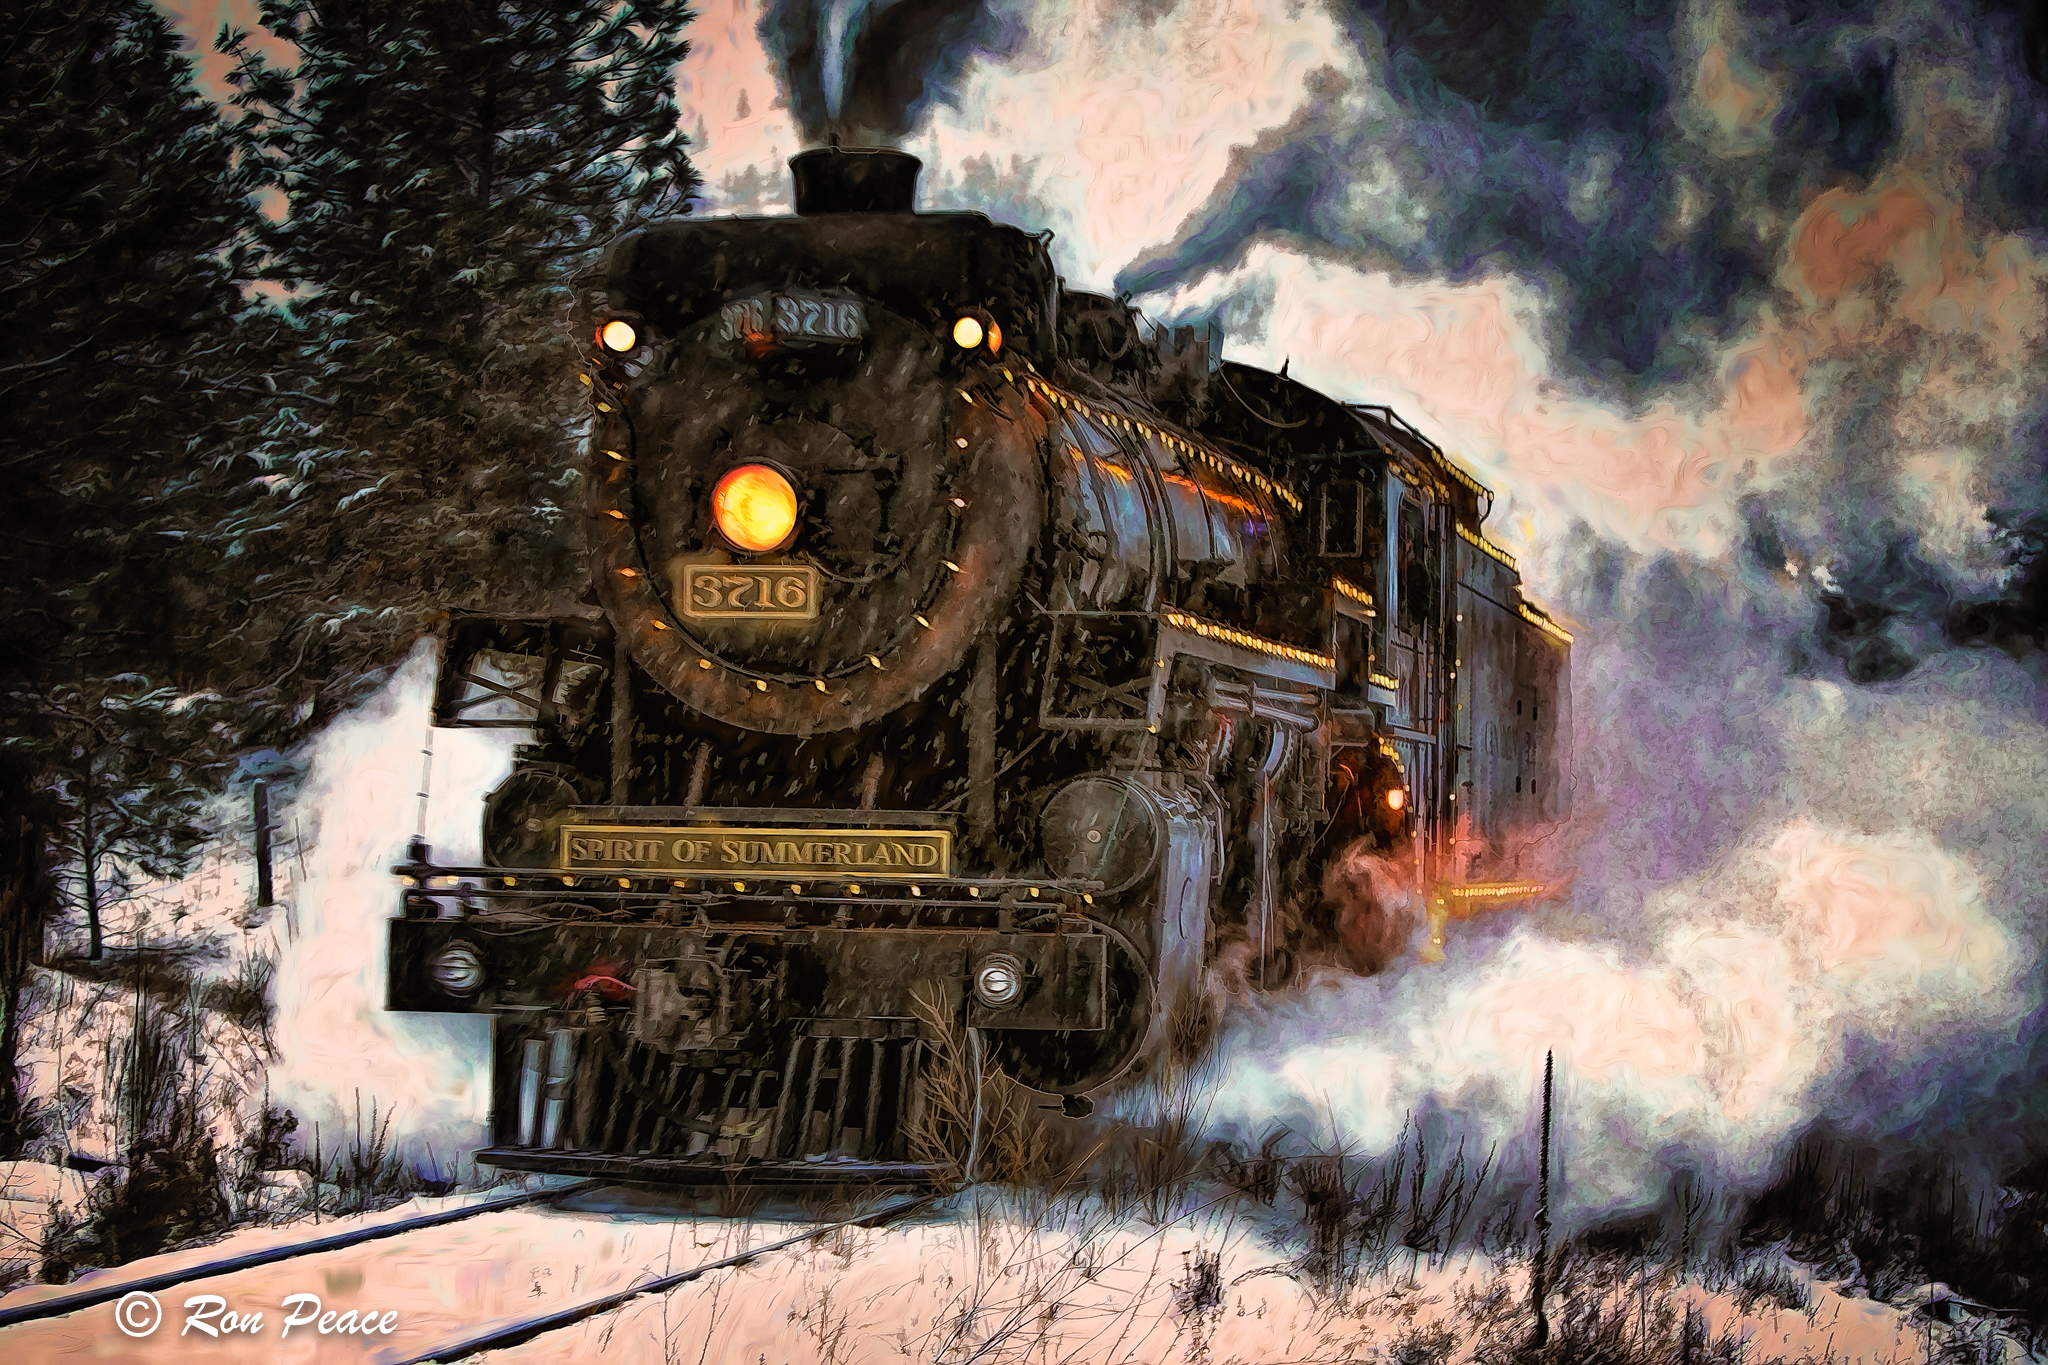 A mixed media (acrylic and photo) of Old 3719 conveys the power of this locomotive steam engine